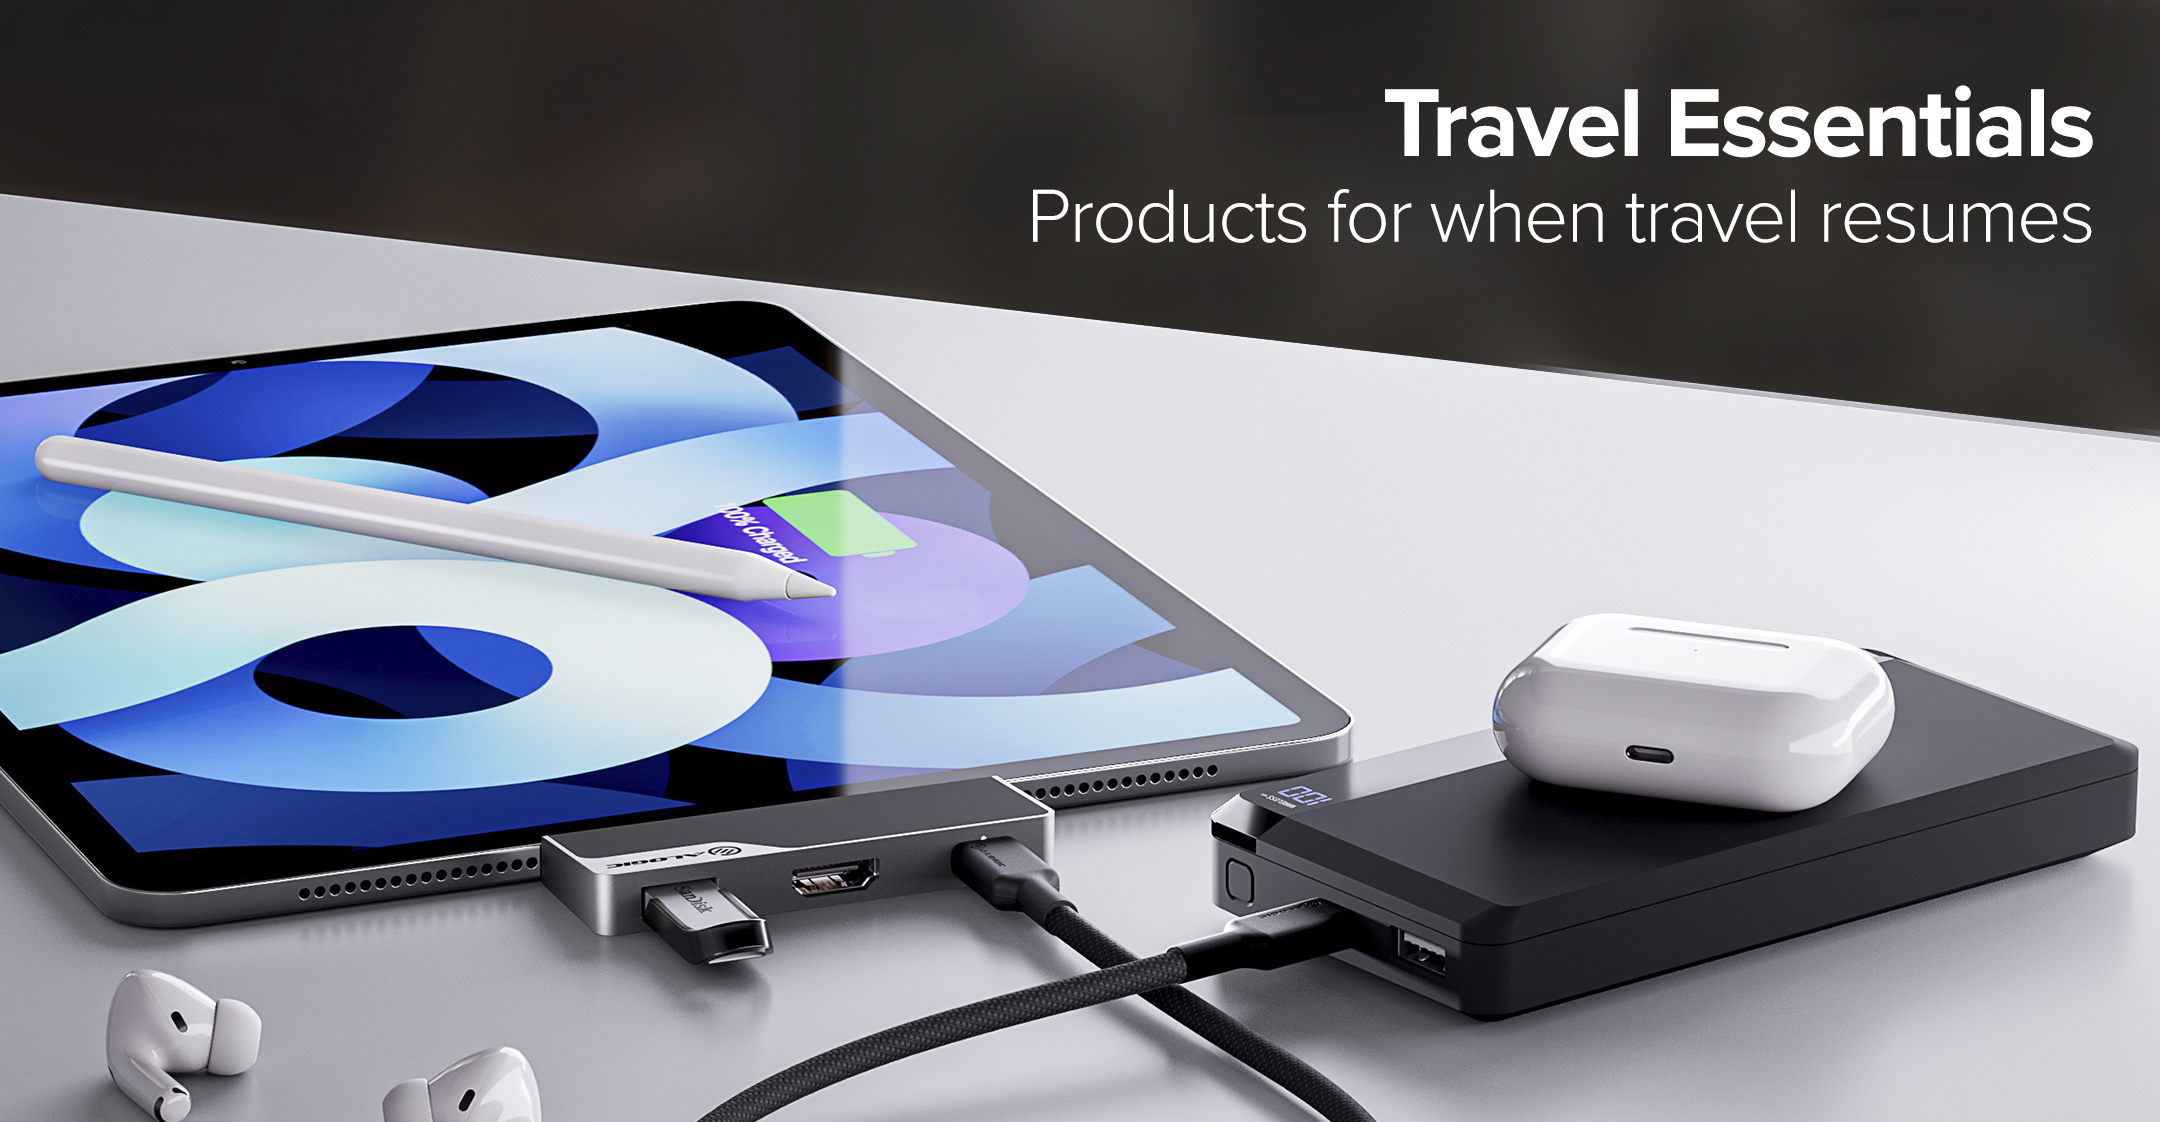 4 great devices to have with you when travelling